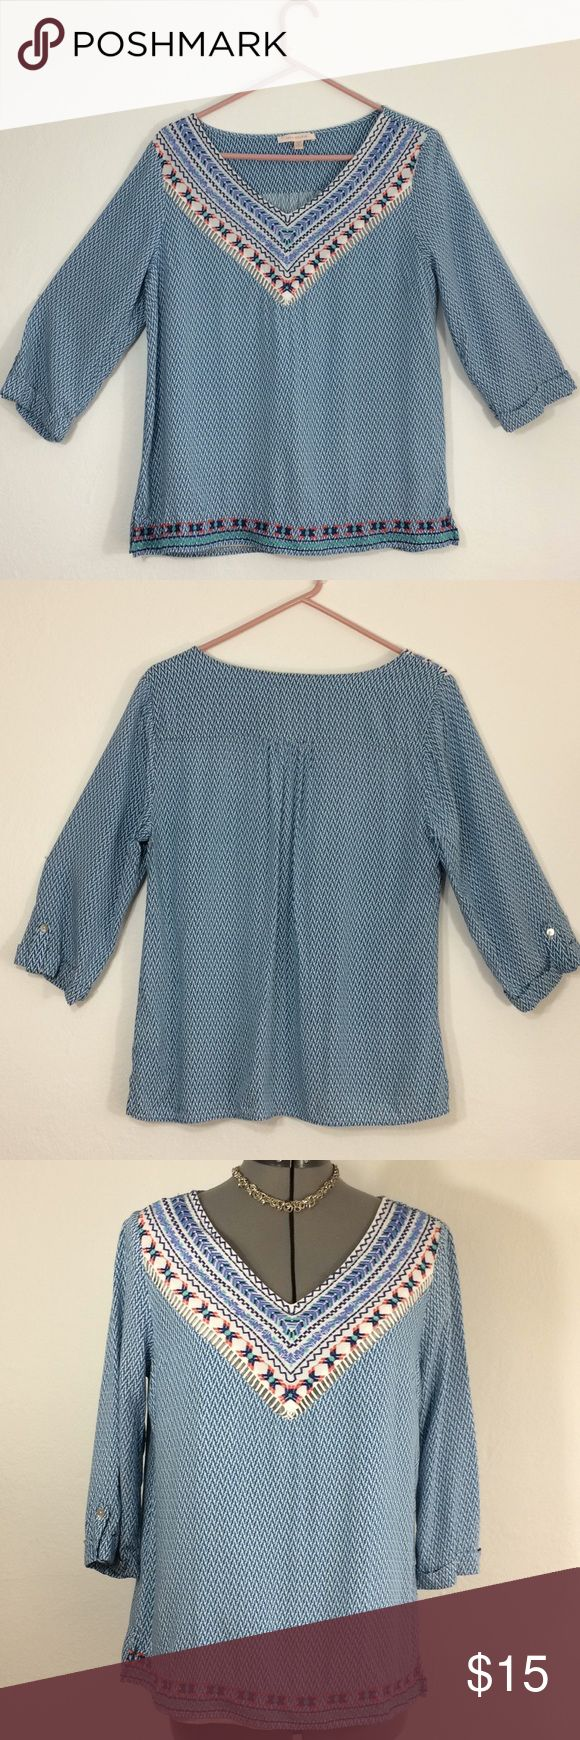 """Anthropologie Skies are Blue 1/2 sleeve blouse-L Lovely lightweight light blue print peasant blouse with front v neck tribal embroidery. 1/2 sleeve with button. Lining on inner front. Embroidery along front hem. Puckered between shoulder blades. Beautiful with skirt/shorts and a pair of sandals. """"Sister blouse"""" to another listing(white Anthropologie tank) Armpit to armpit 20"""" Sleeve 17"""" shoulder to hem 24"""" Shoulder across 15.5"""" Anthropologie Tops Blouses"""